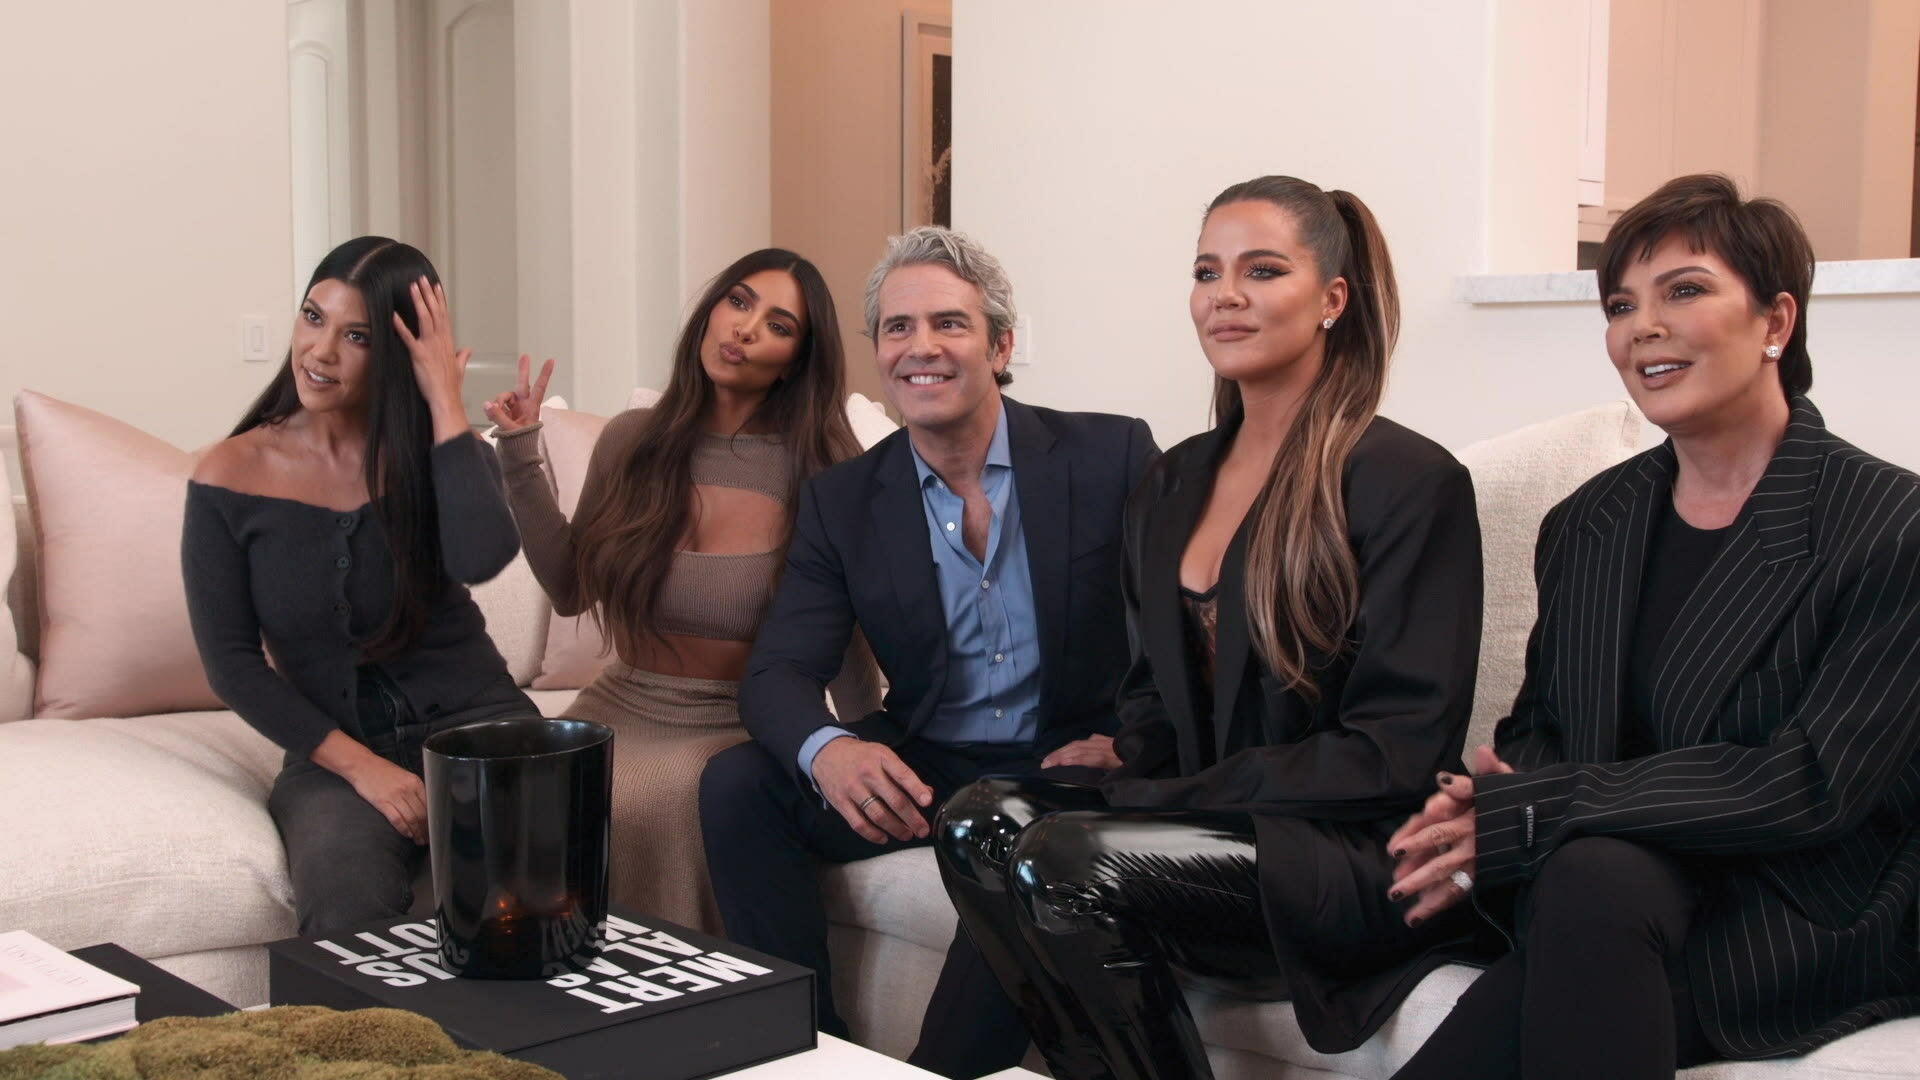 For Real: The Story of Reality TV — s01e01 — Celebs: Just Like Us?